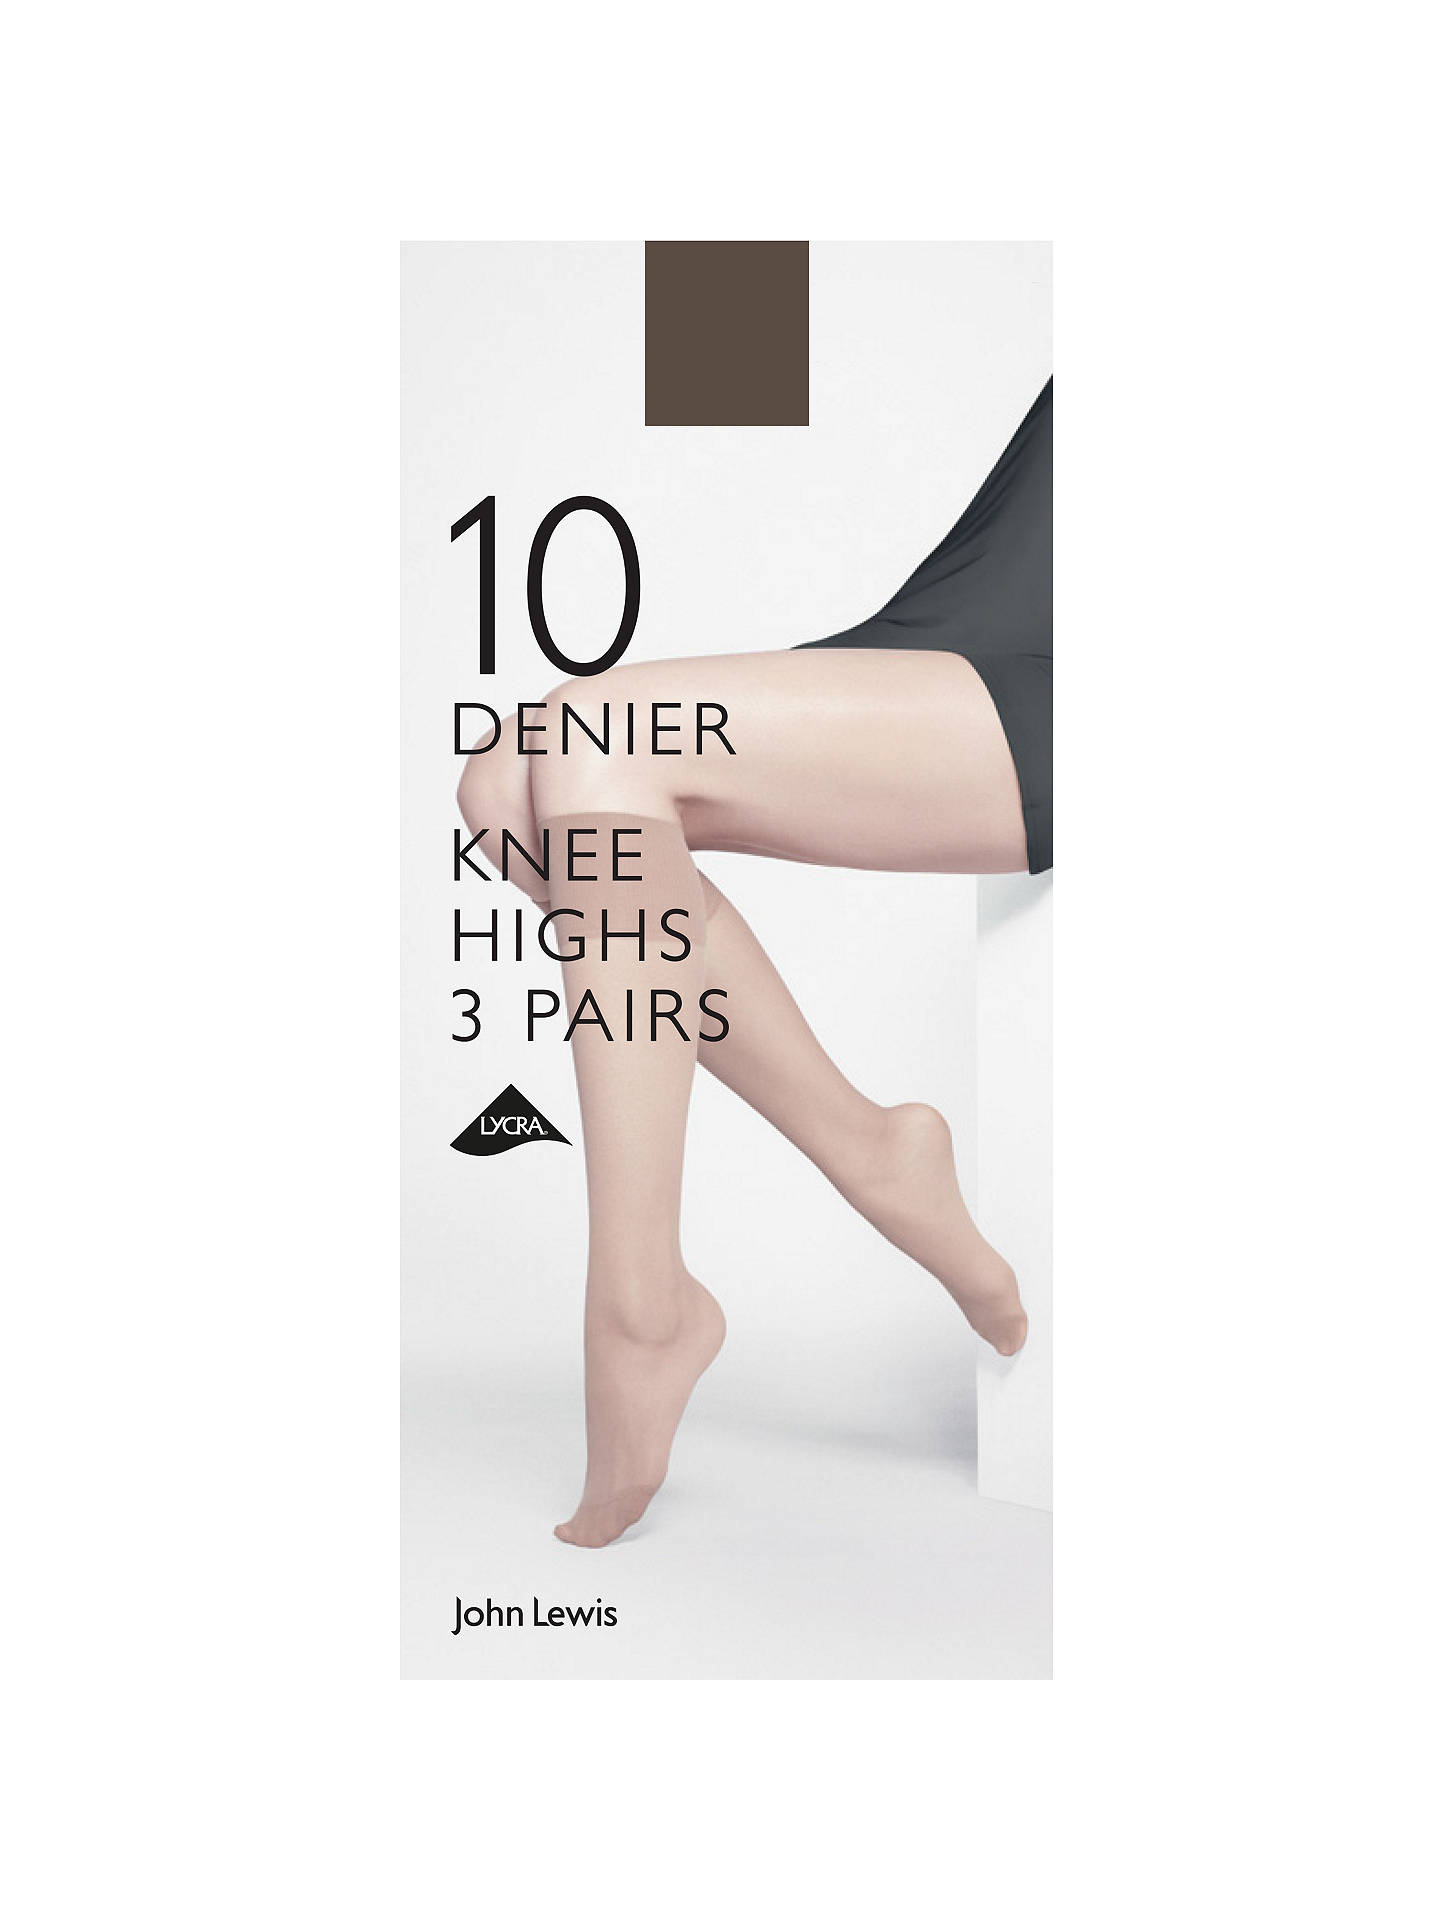 ead91d2d4 Buy John Lewis   Partners 10 Denier Knee High Socks